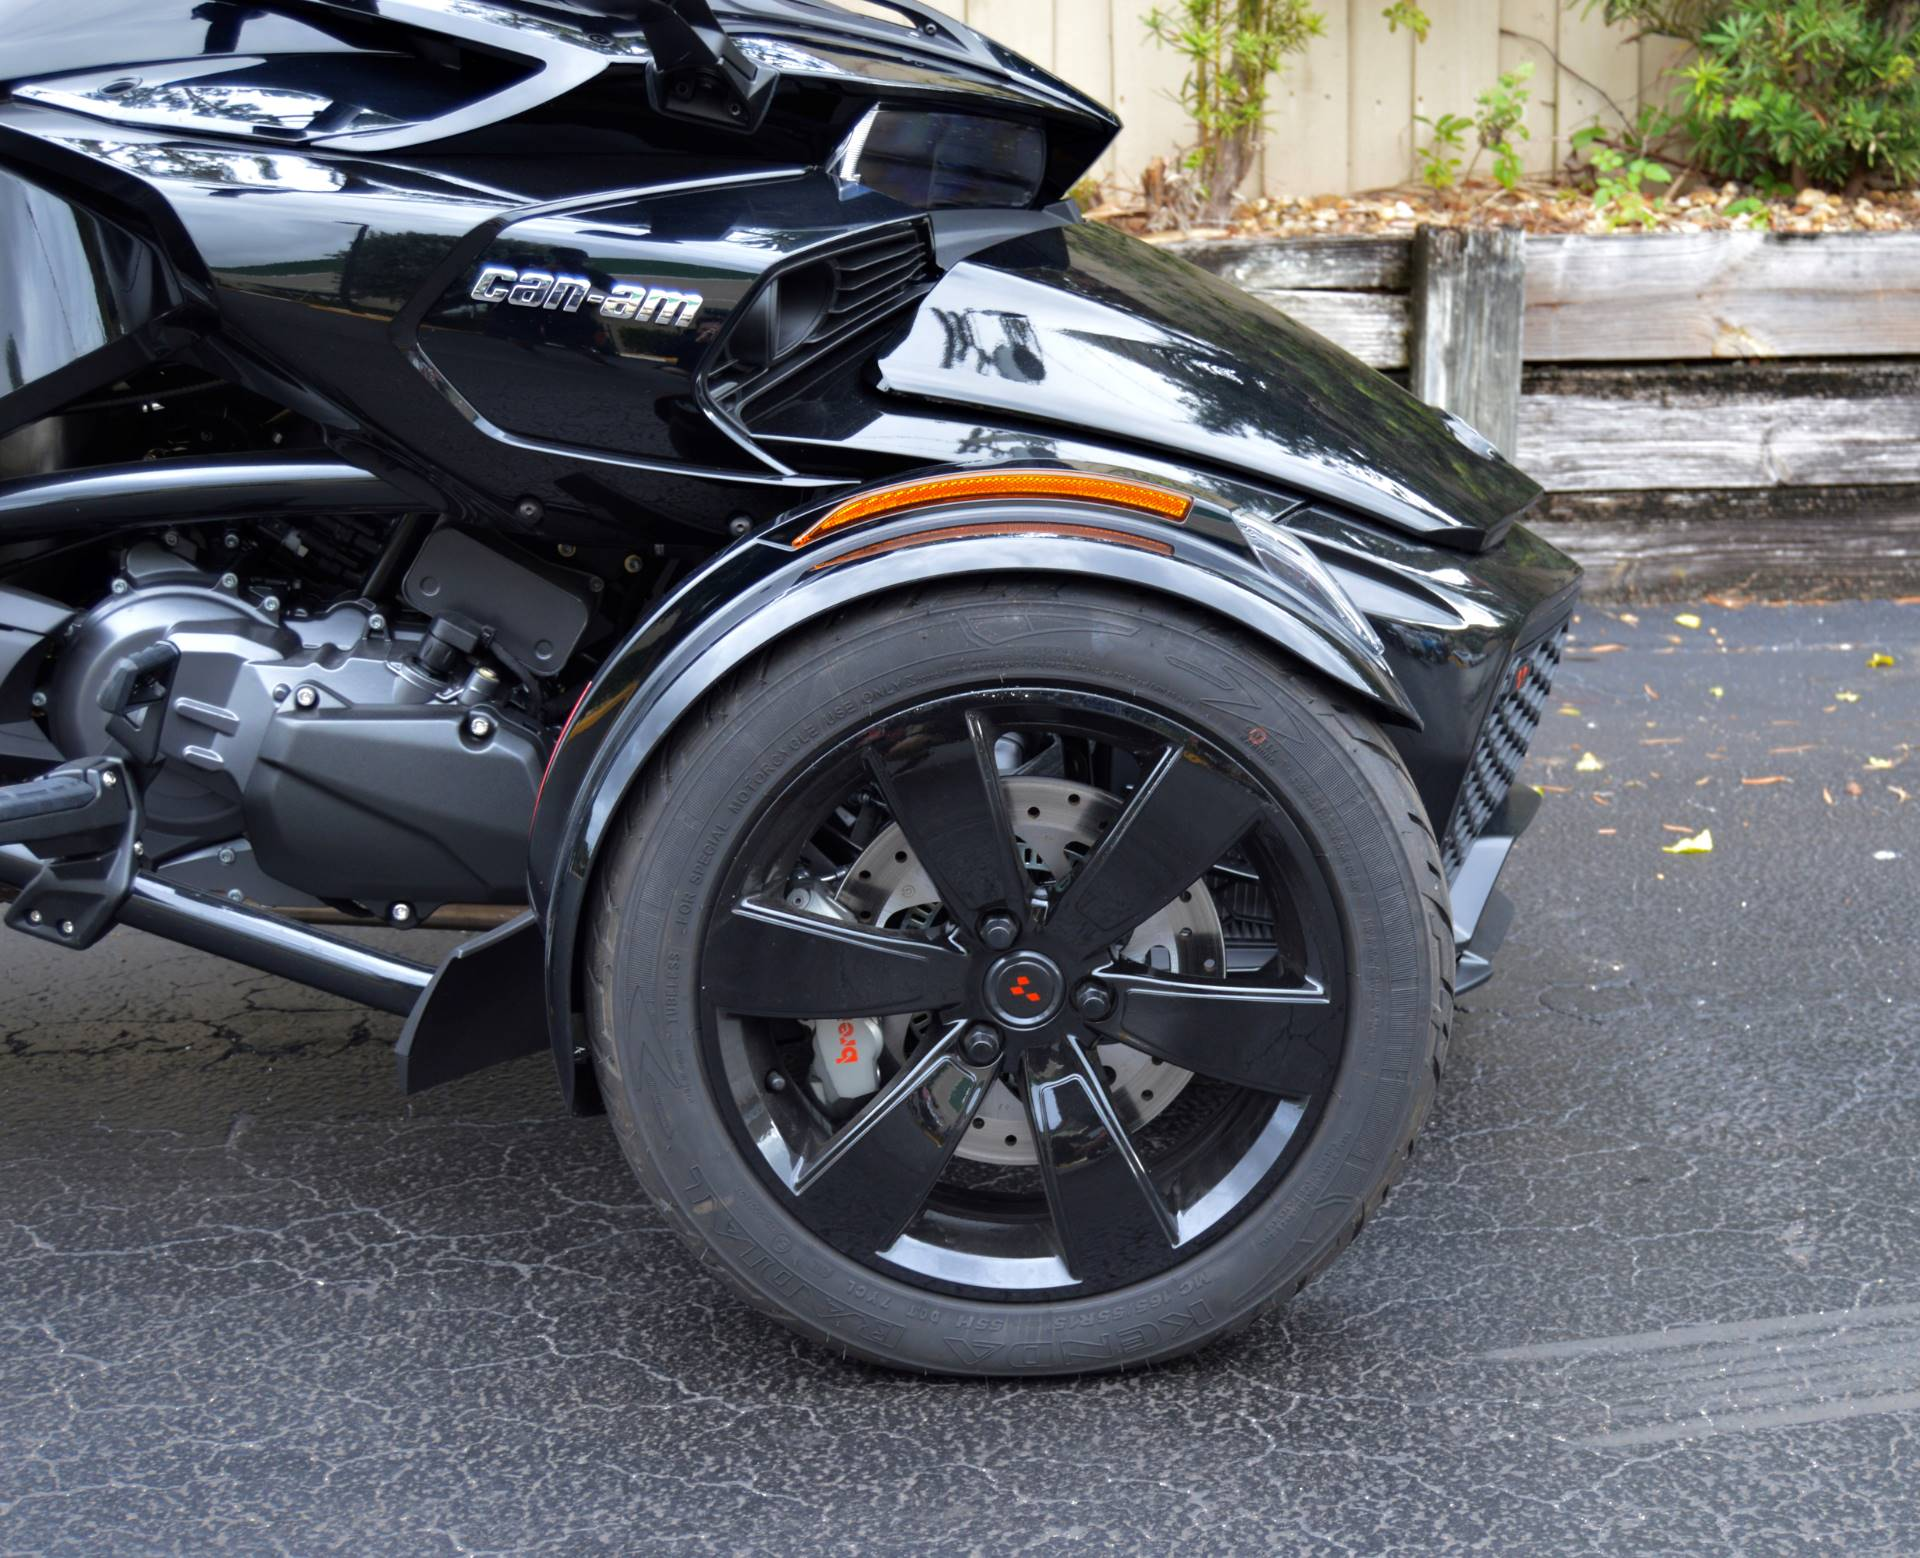 2019 Can-Am Spyder F3 in Boca Raton, Florida - Photo 3